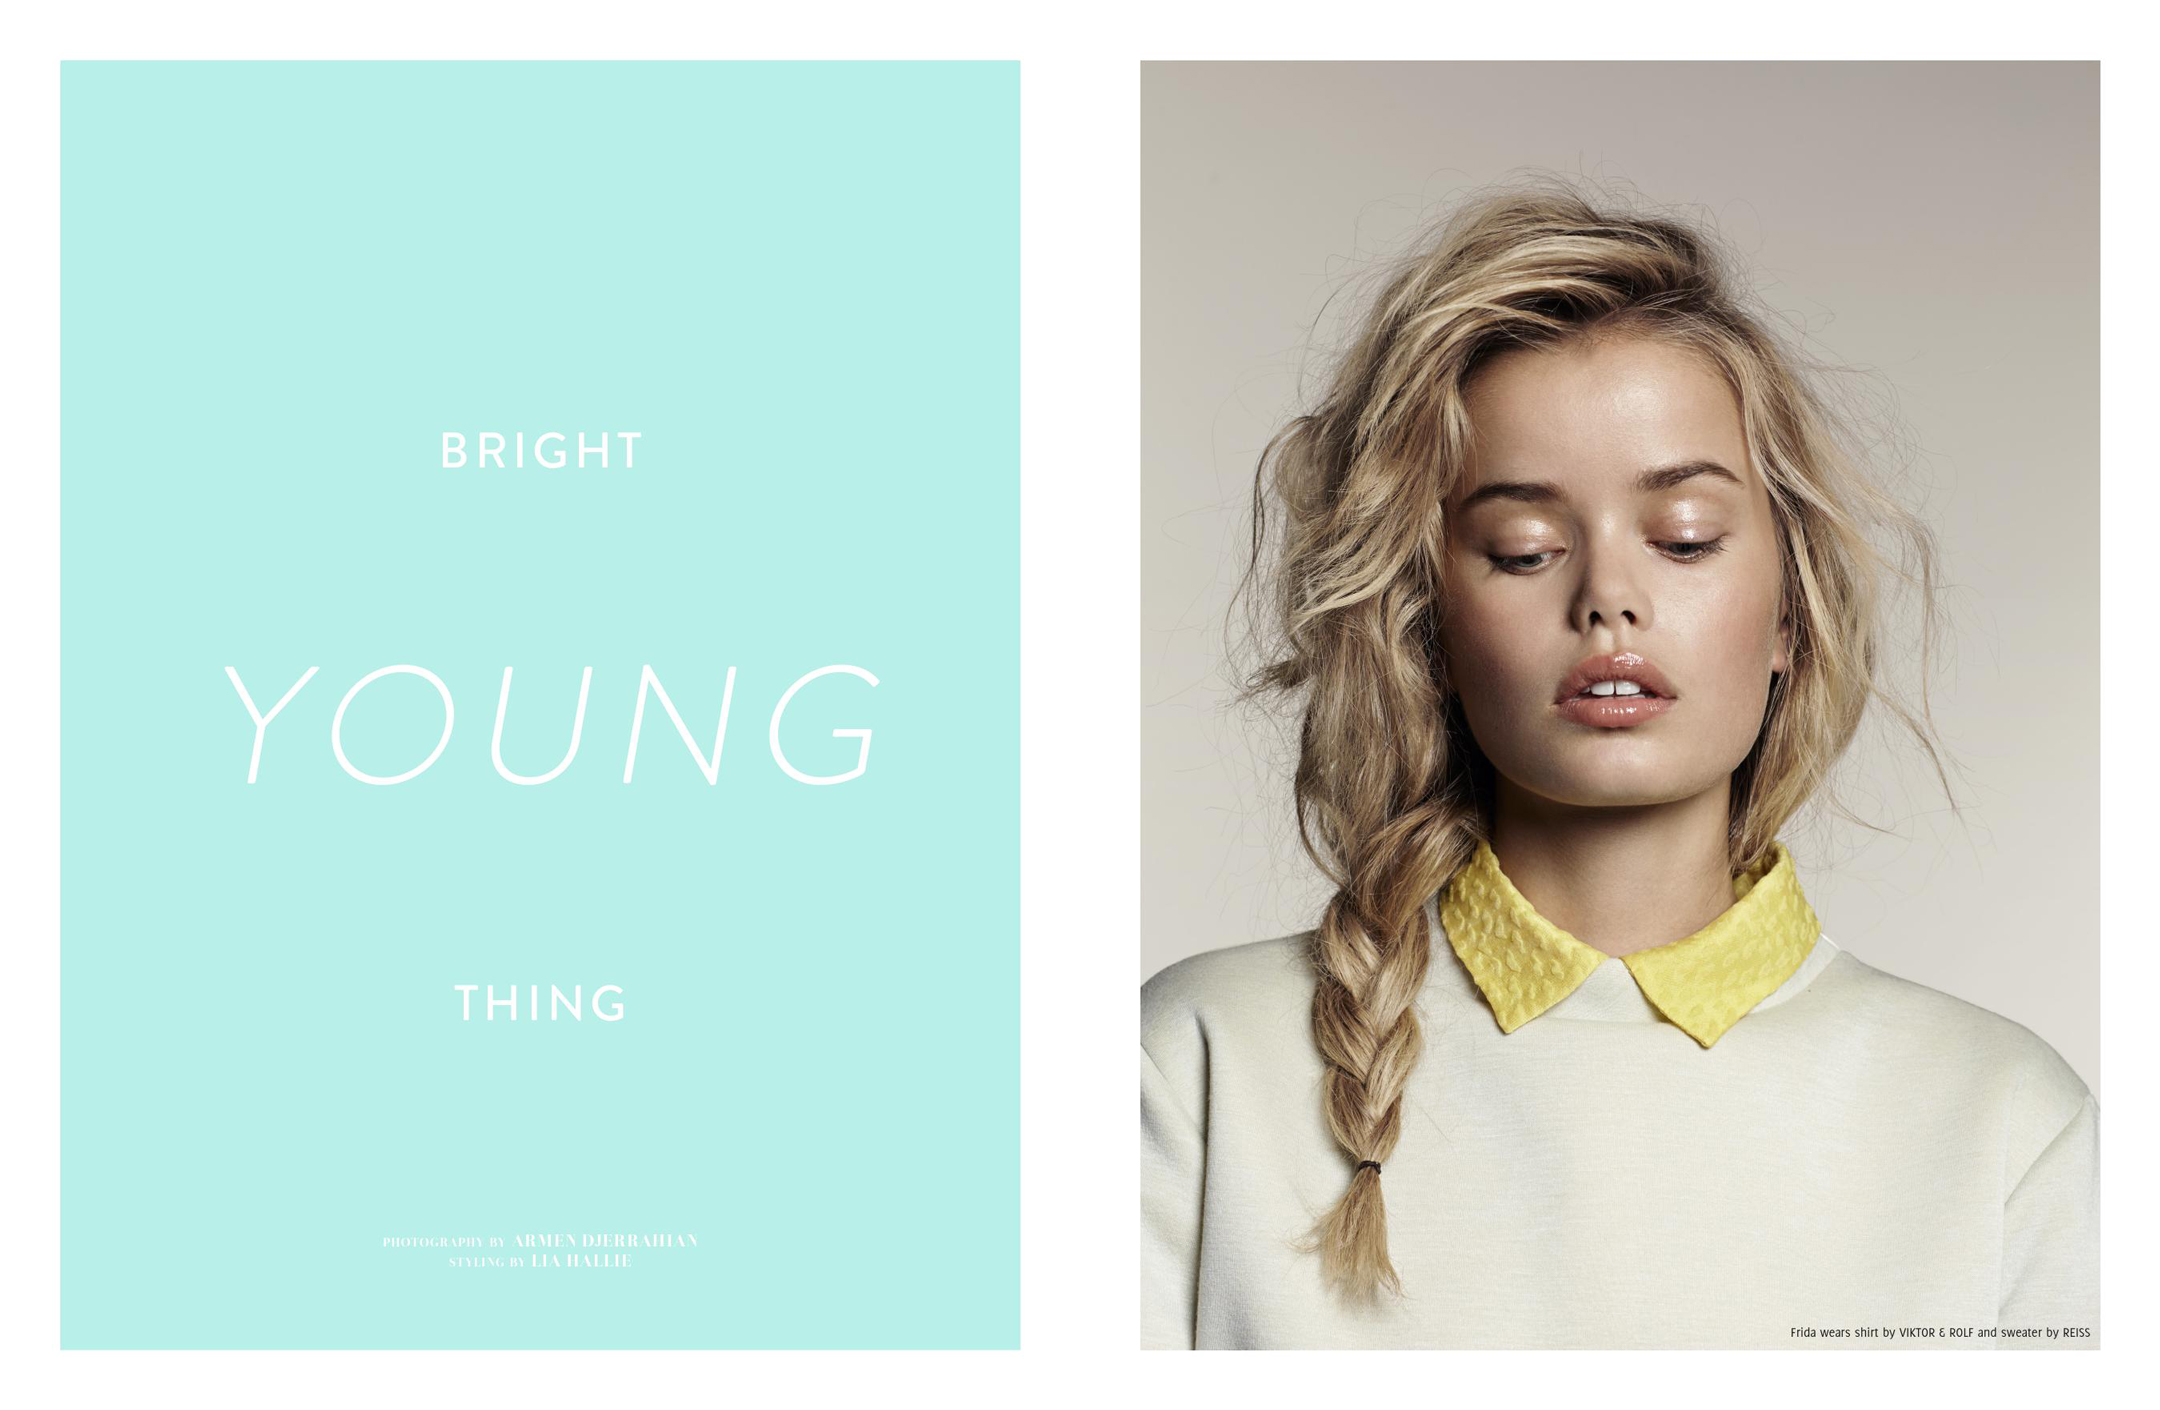 Bright-Young-Thing_1.jpg